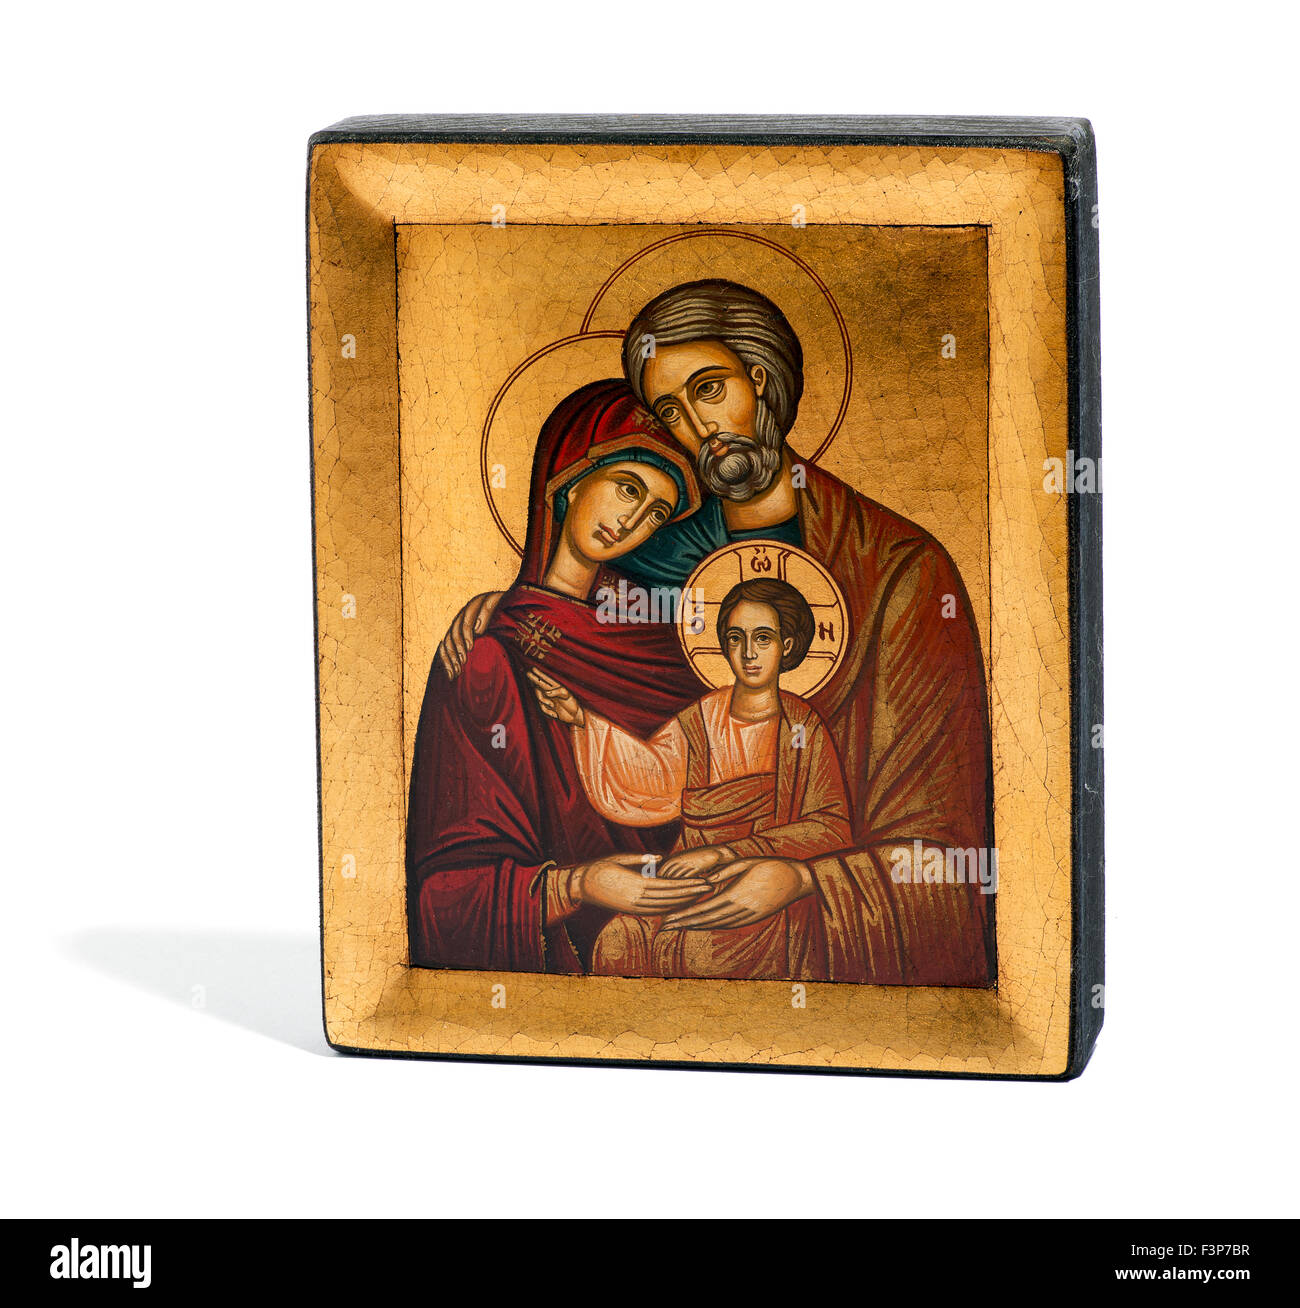 gilded painted wooden religious icon of joseph mary and the baby